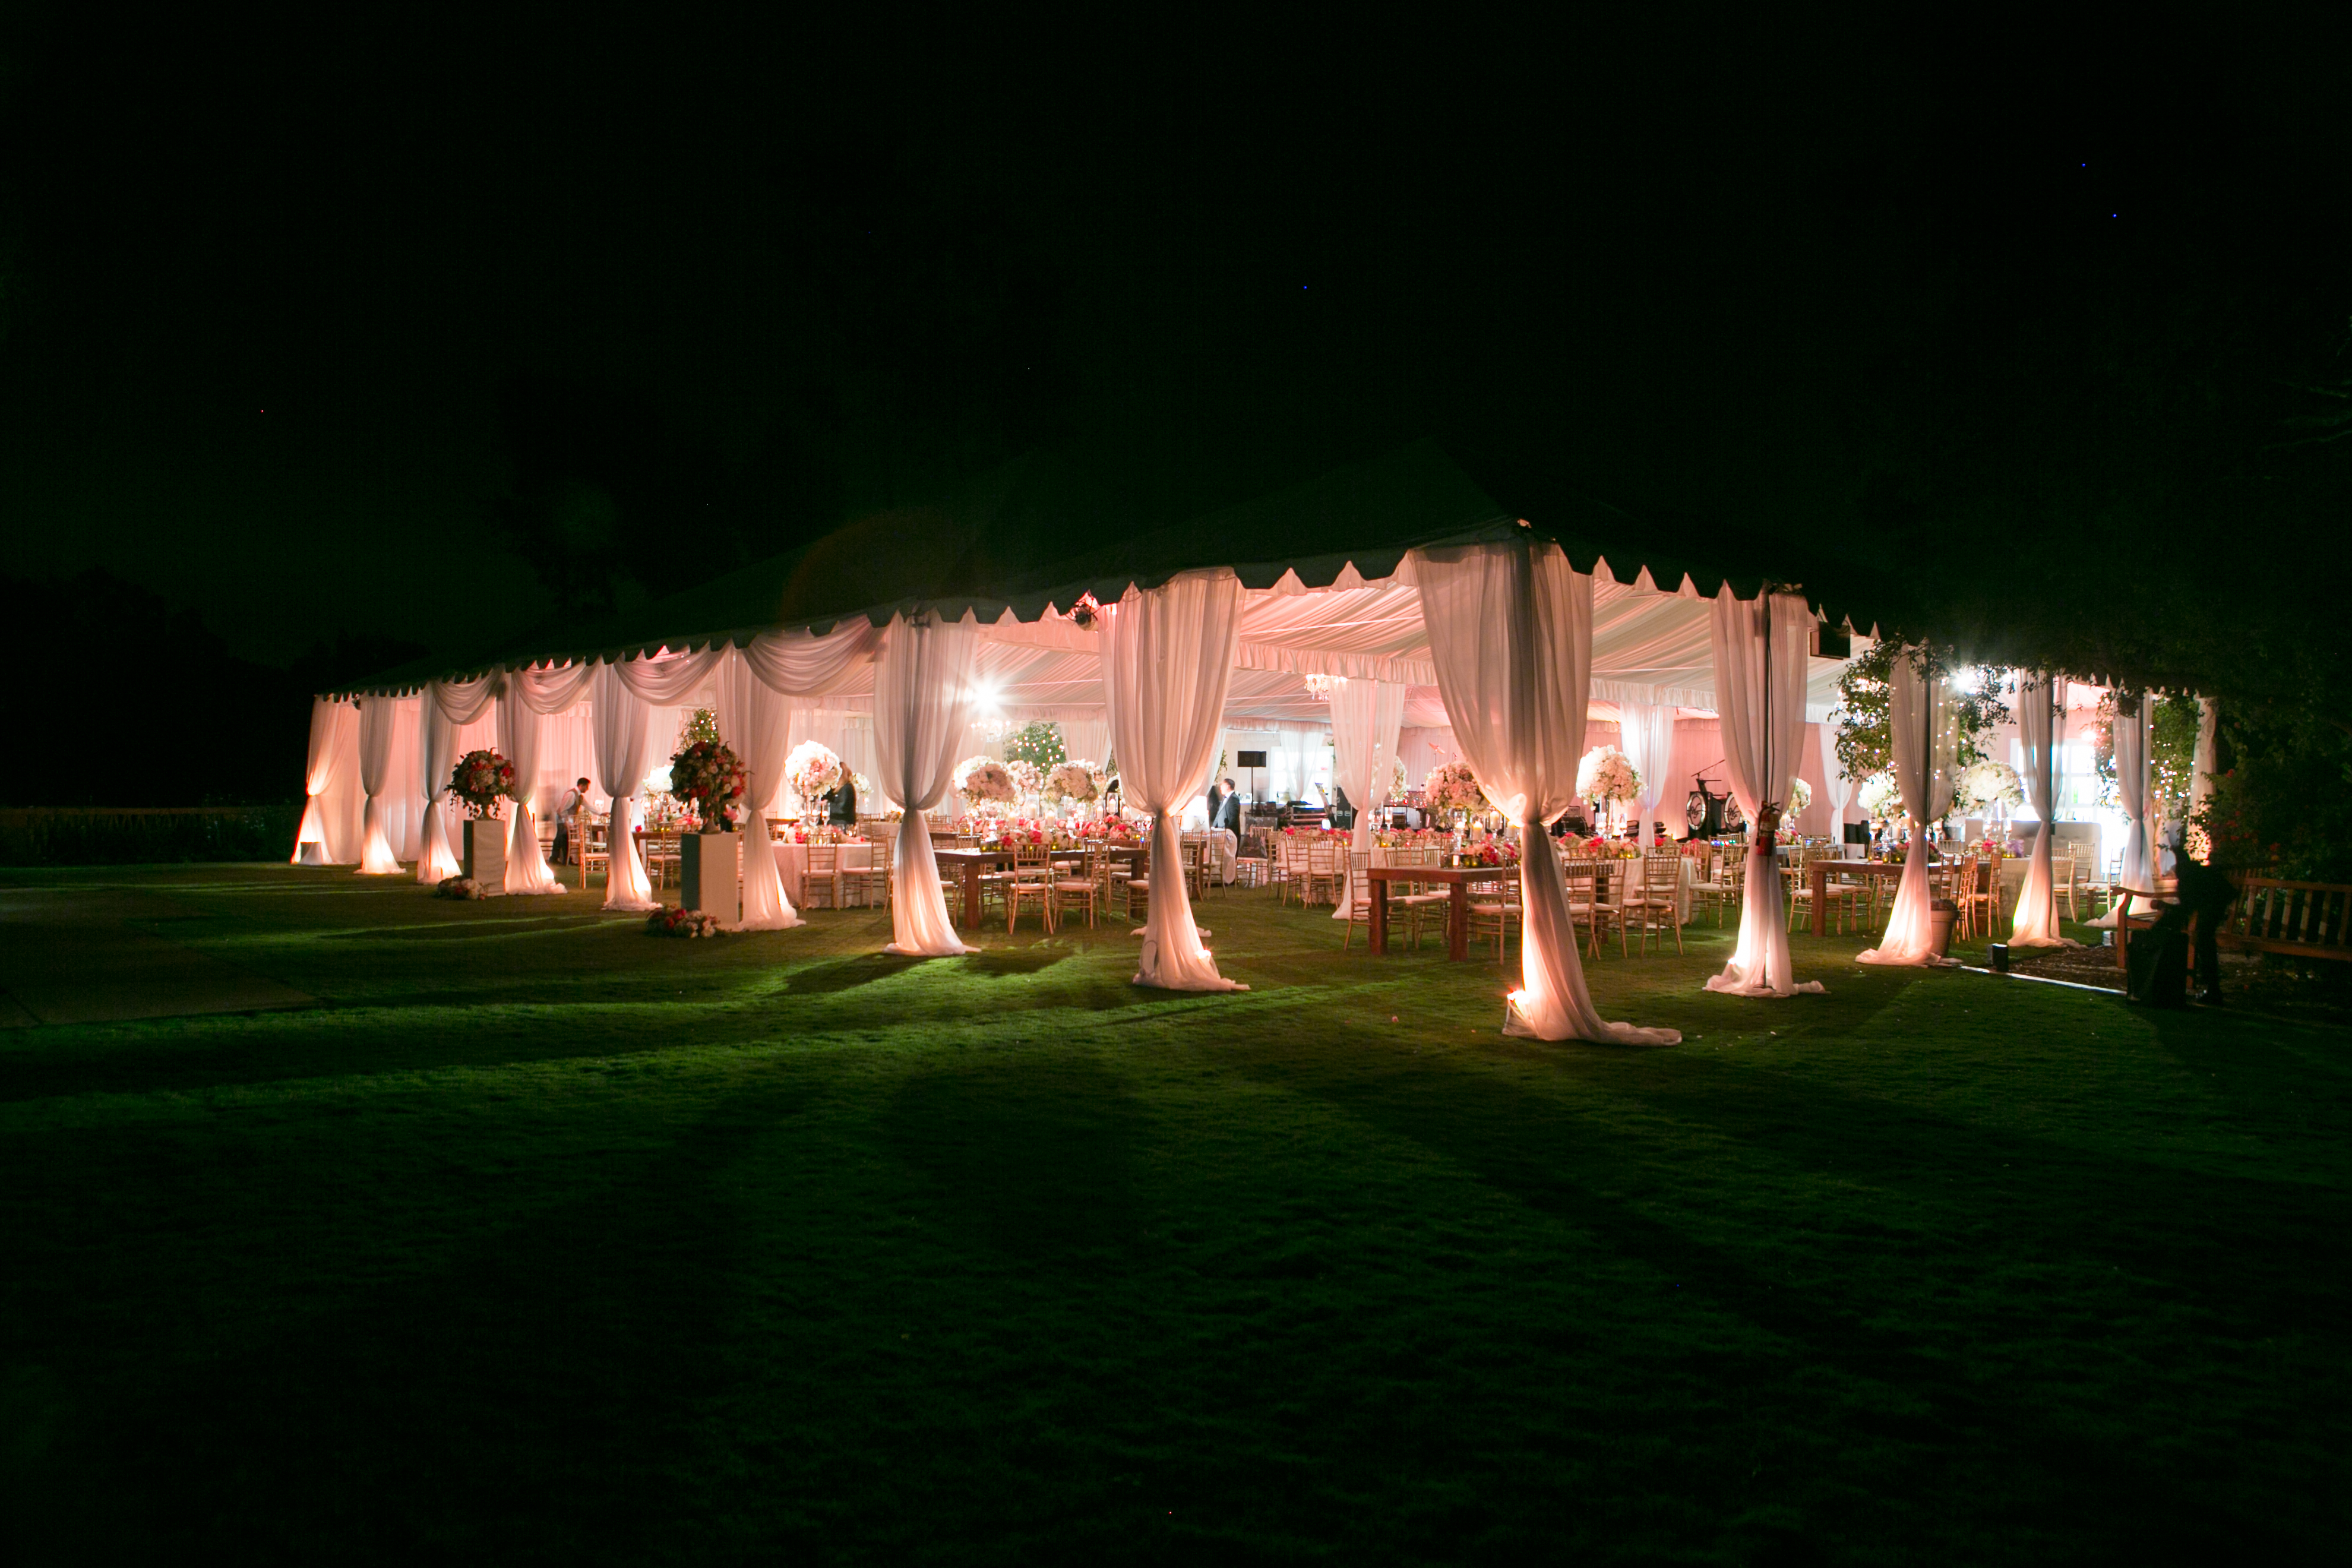 our 10,000 sq ft tent lit up t night